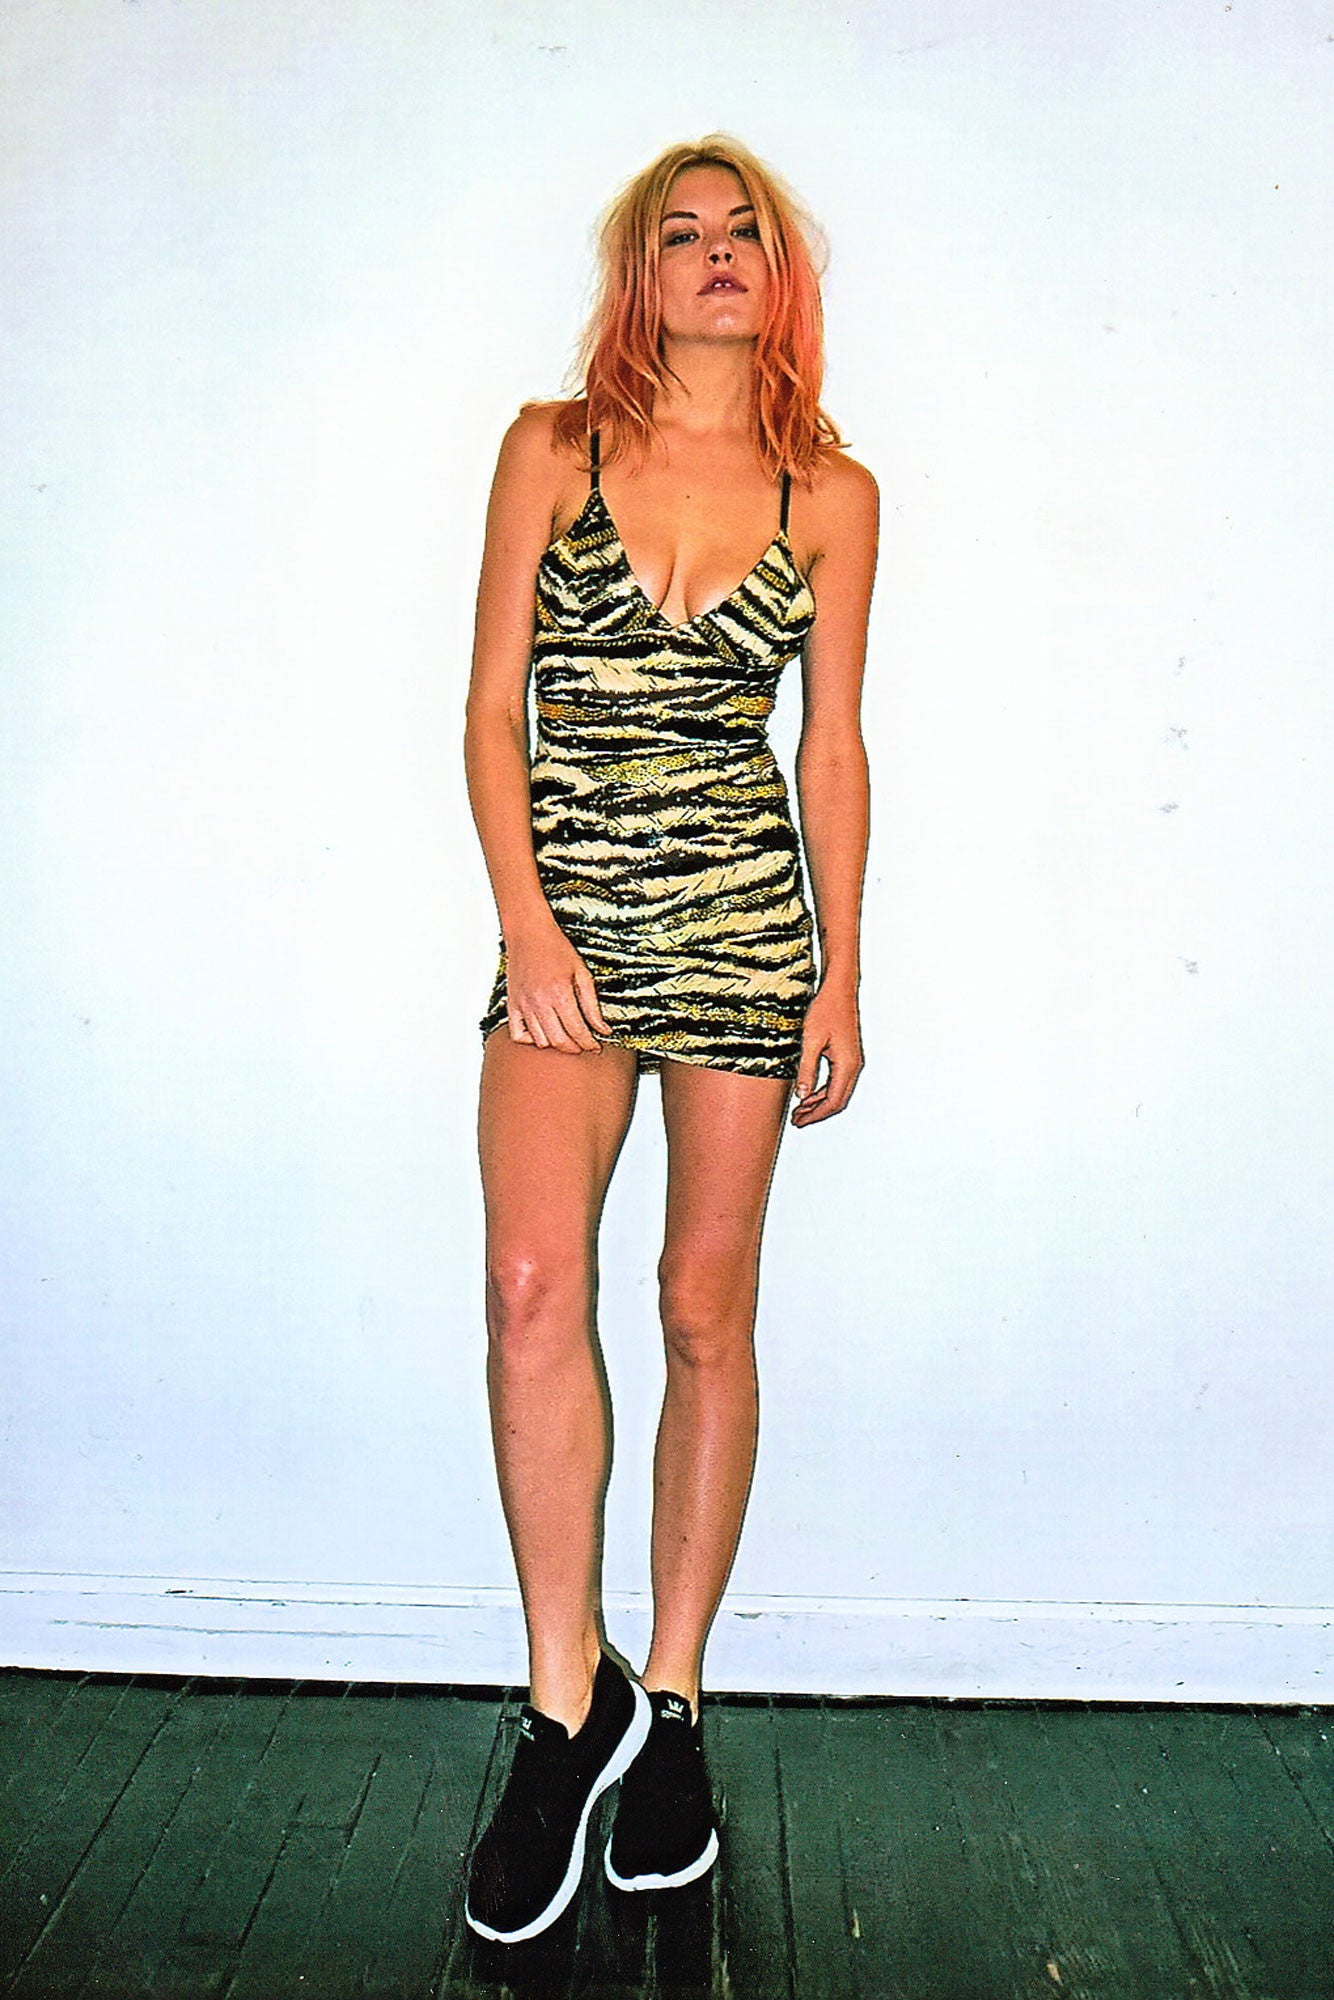 poison ivy mini bralet dress, poison ivy dress, poison ivy, tiger print sequinned mini dress, sequinned mini dress, sequins, tiger print, dress, discount universe, di$count universe